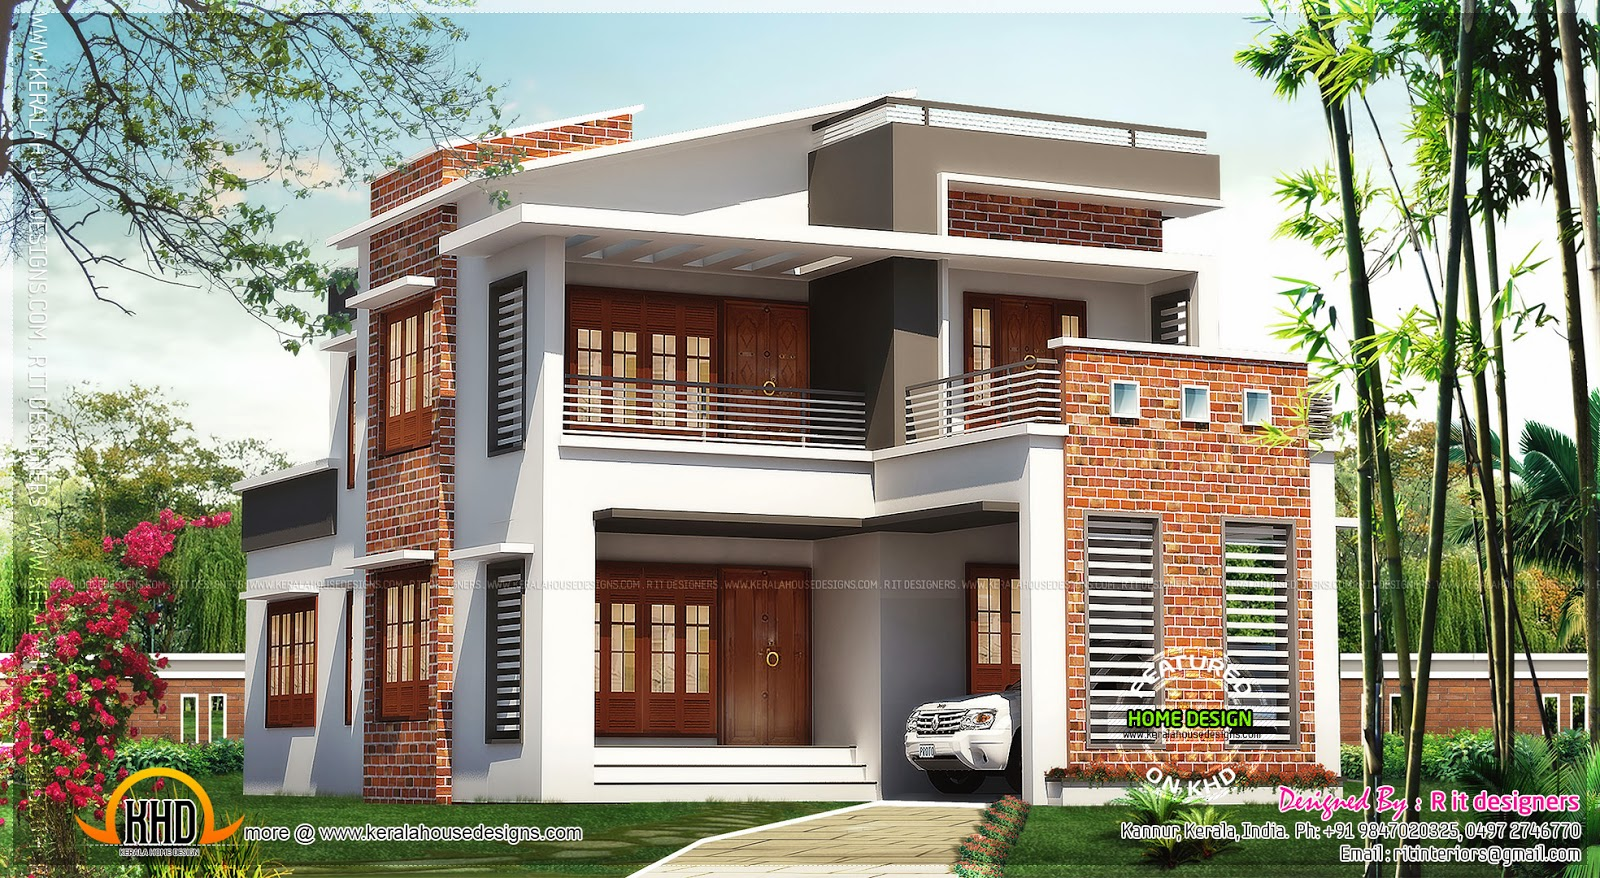 Nice Brick Mix House Exterior Design Kerala Home Design And Floor Plans